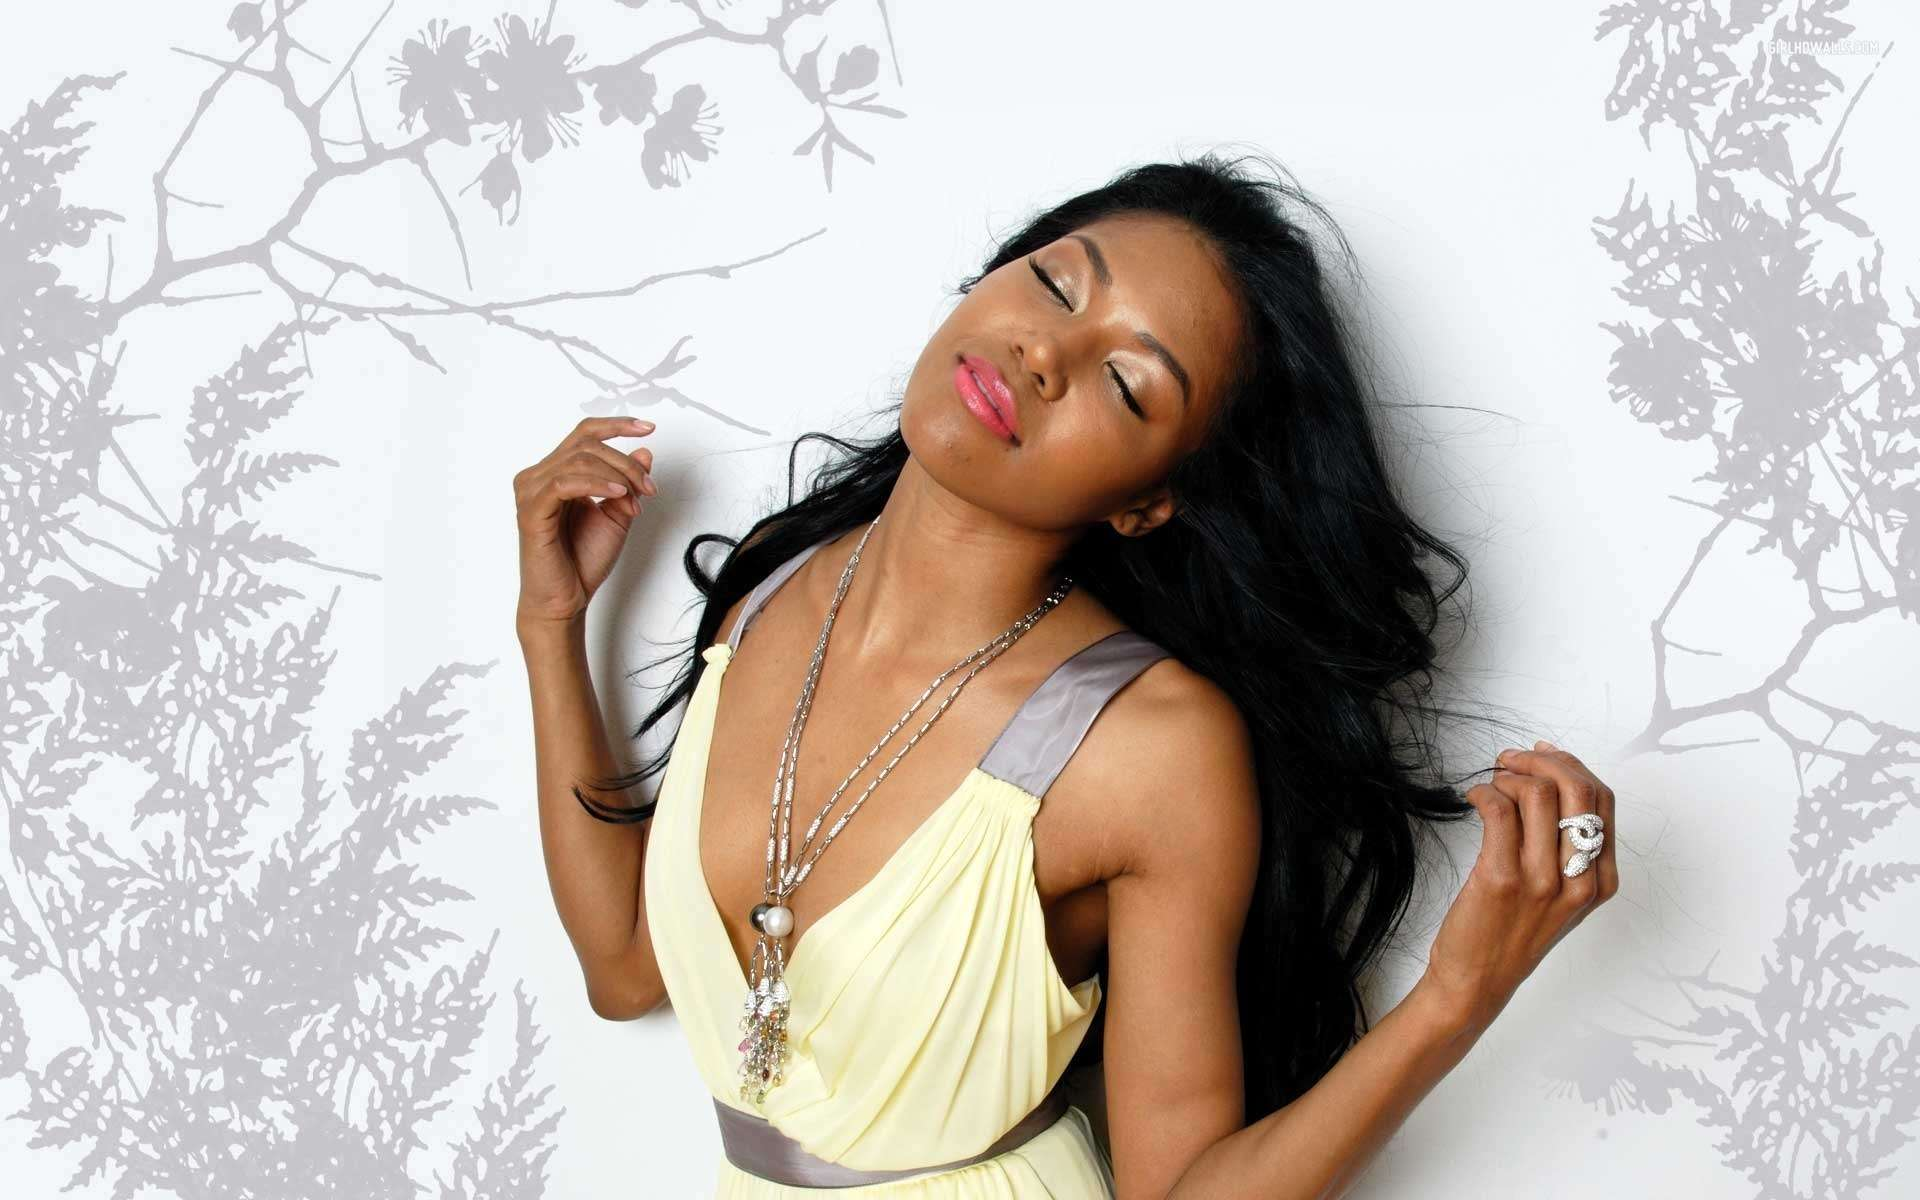 Nice Girl Wallpaper For Fb Amerie Mi Marie Rogers 1 Wallpapers Hd Wallpapers